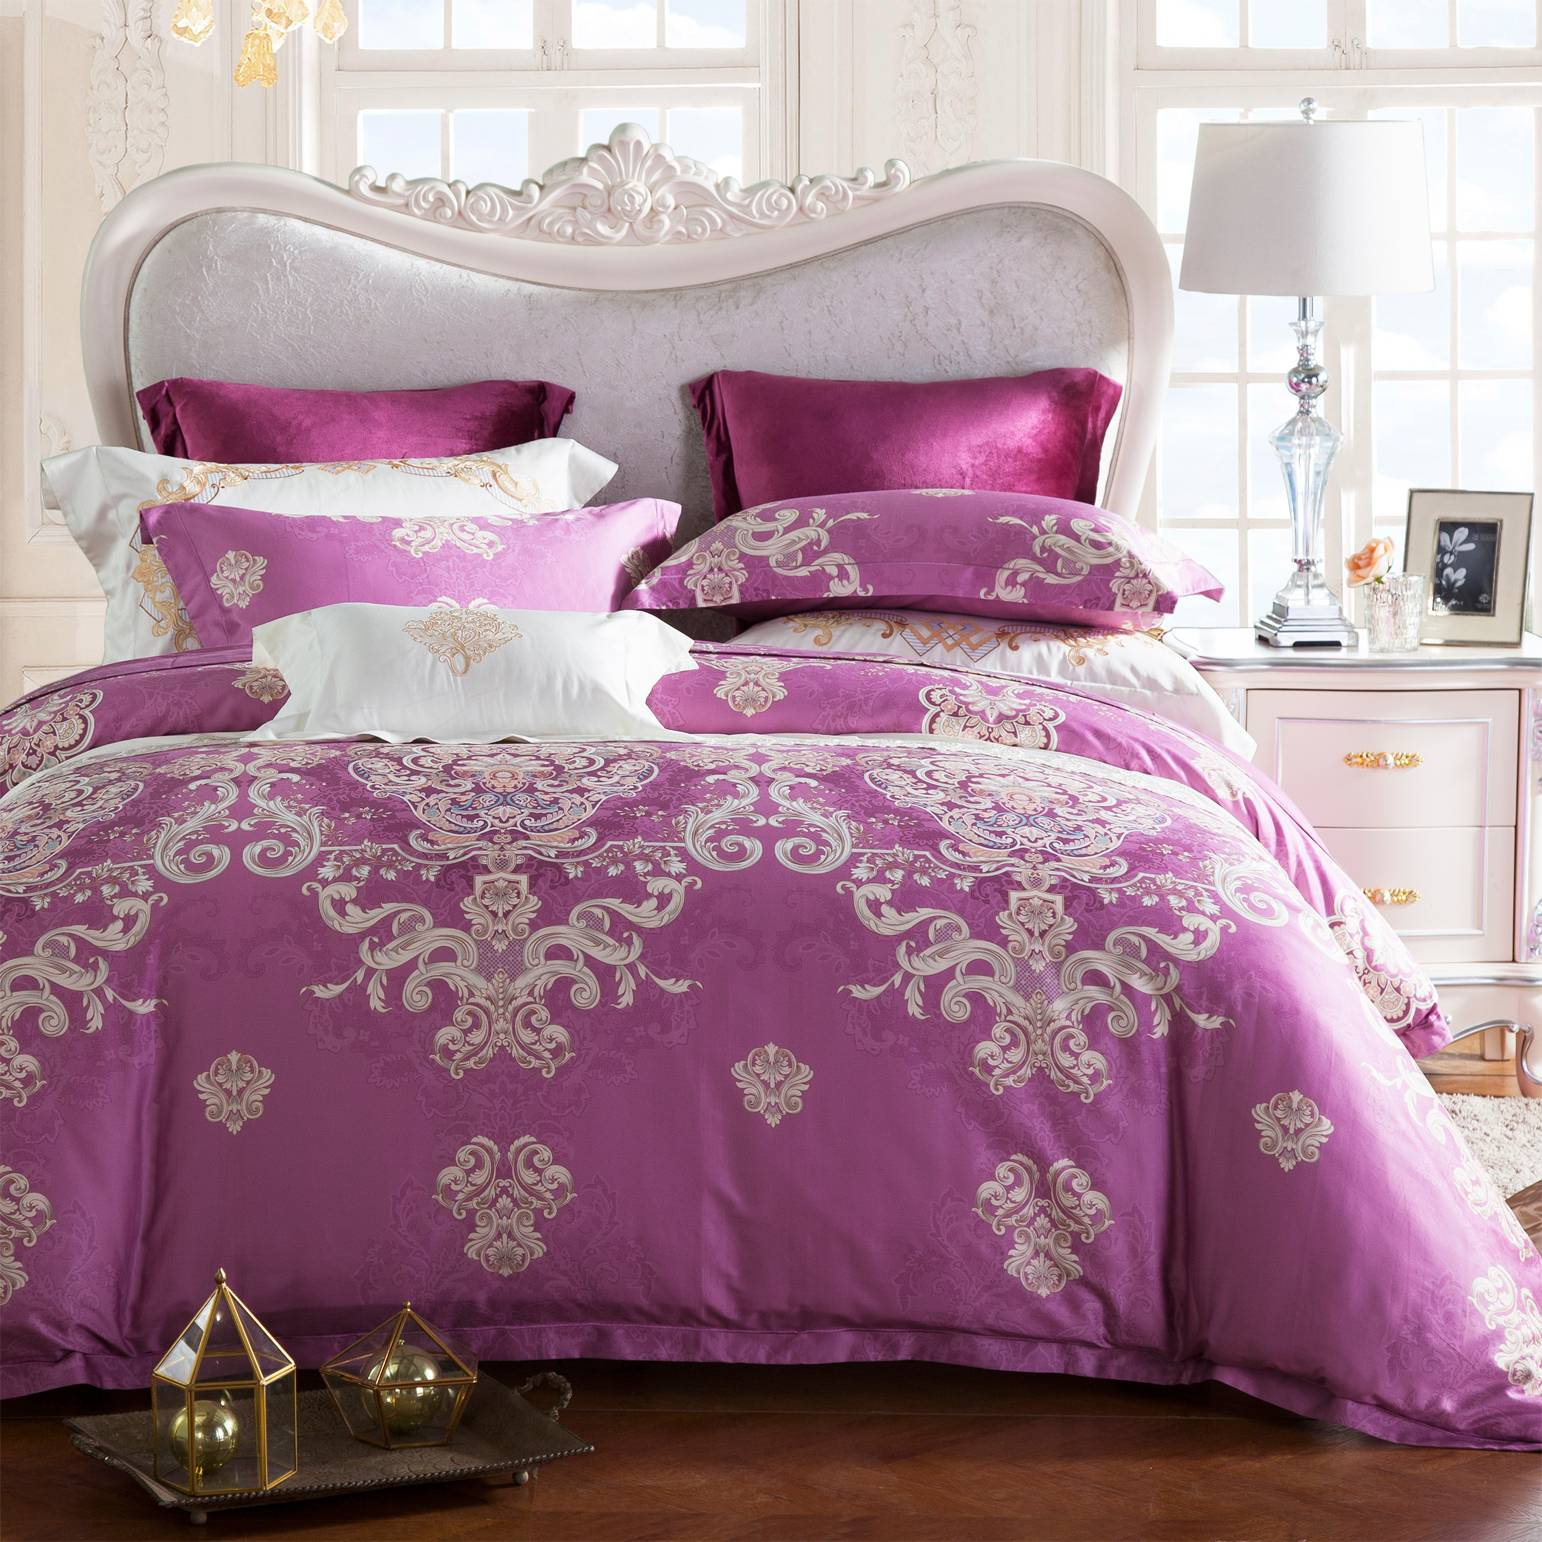 100% Pima Cotton Printed Bedroom Set Elegant  6836